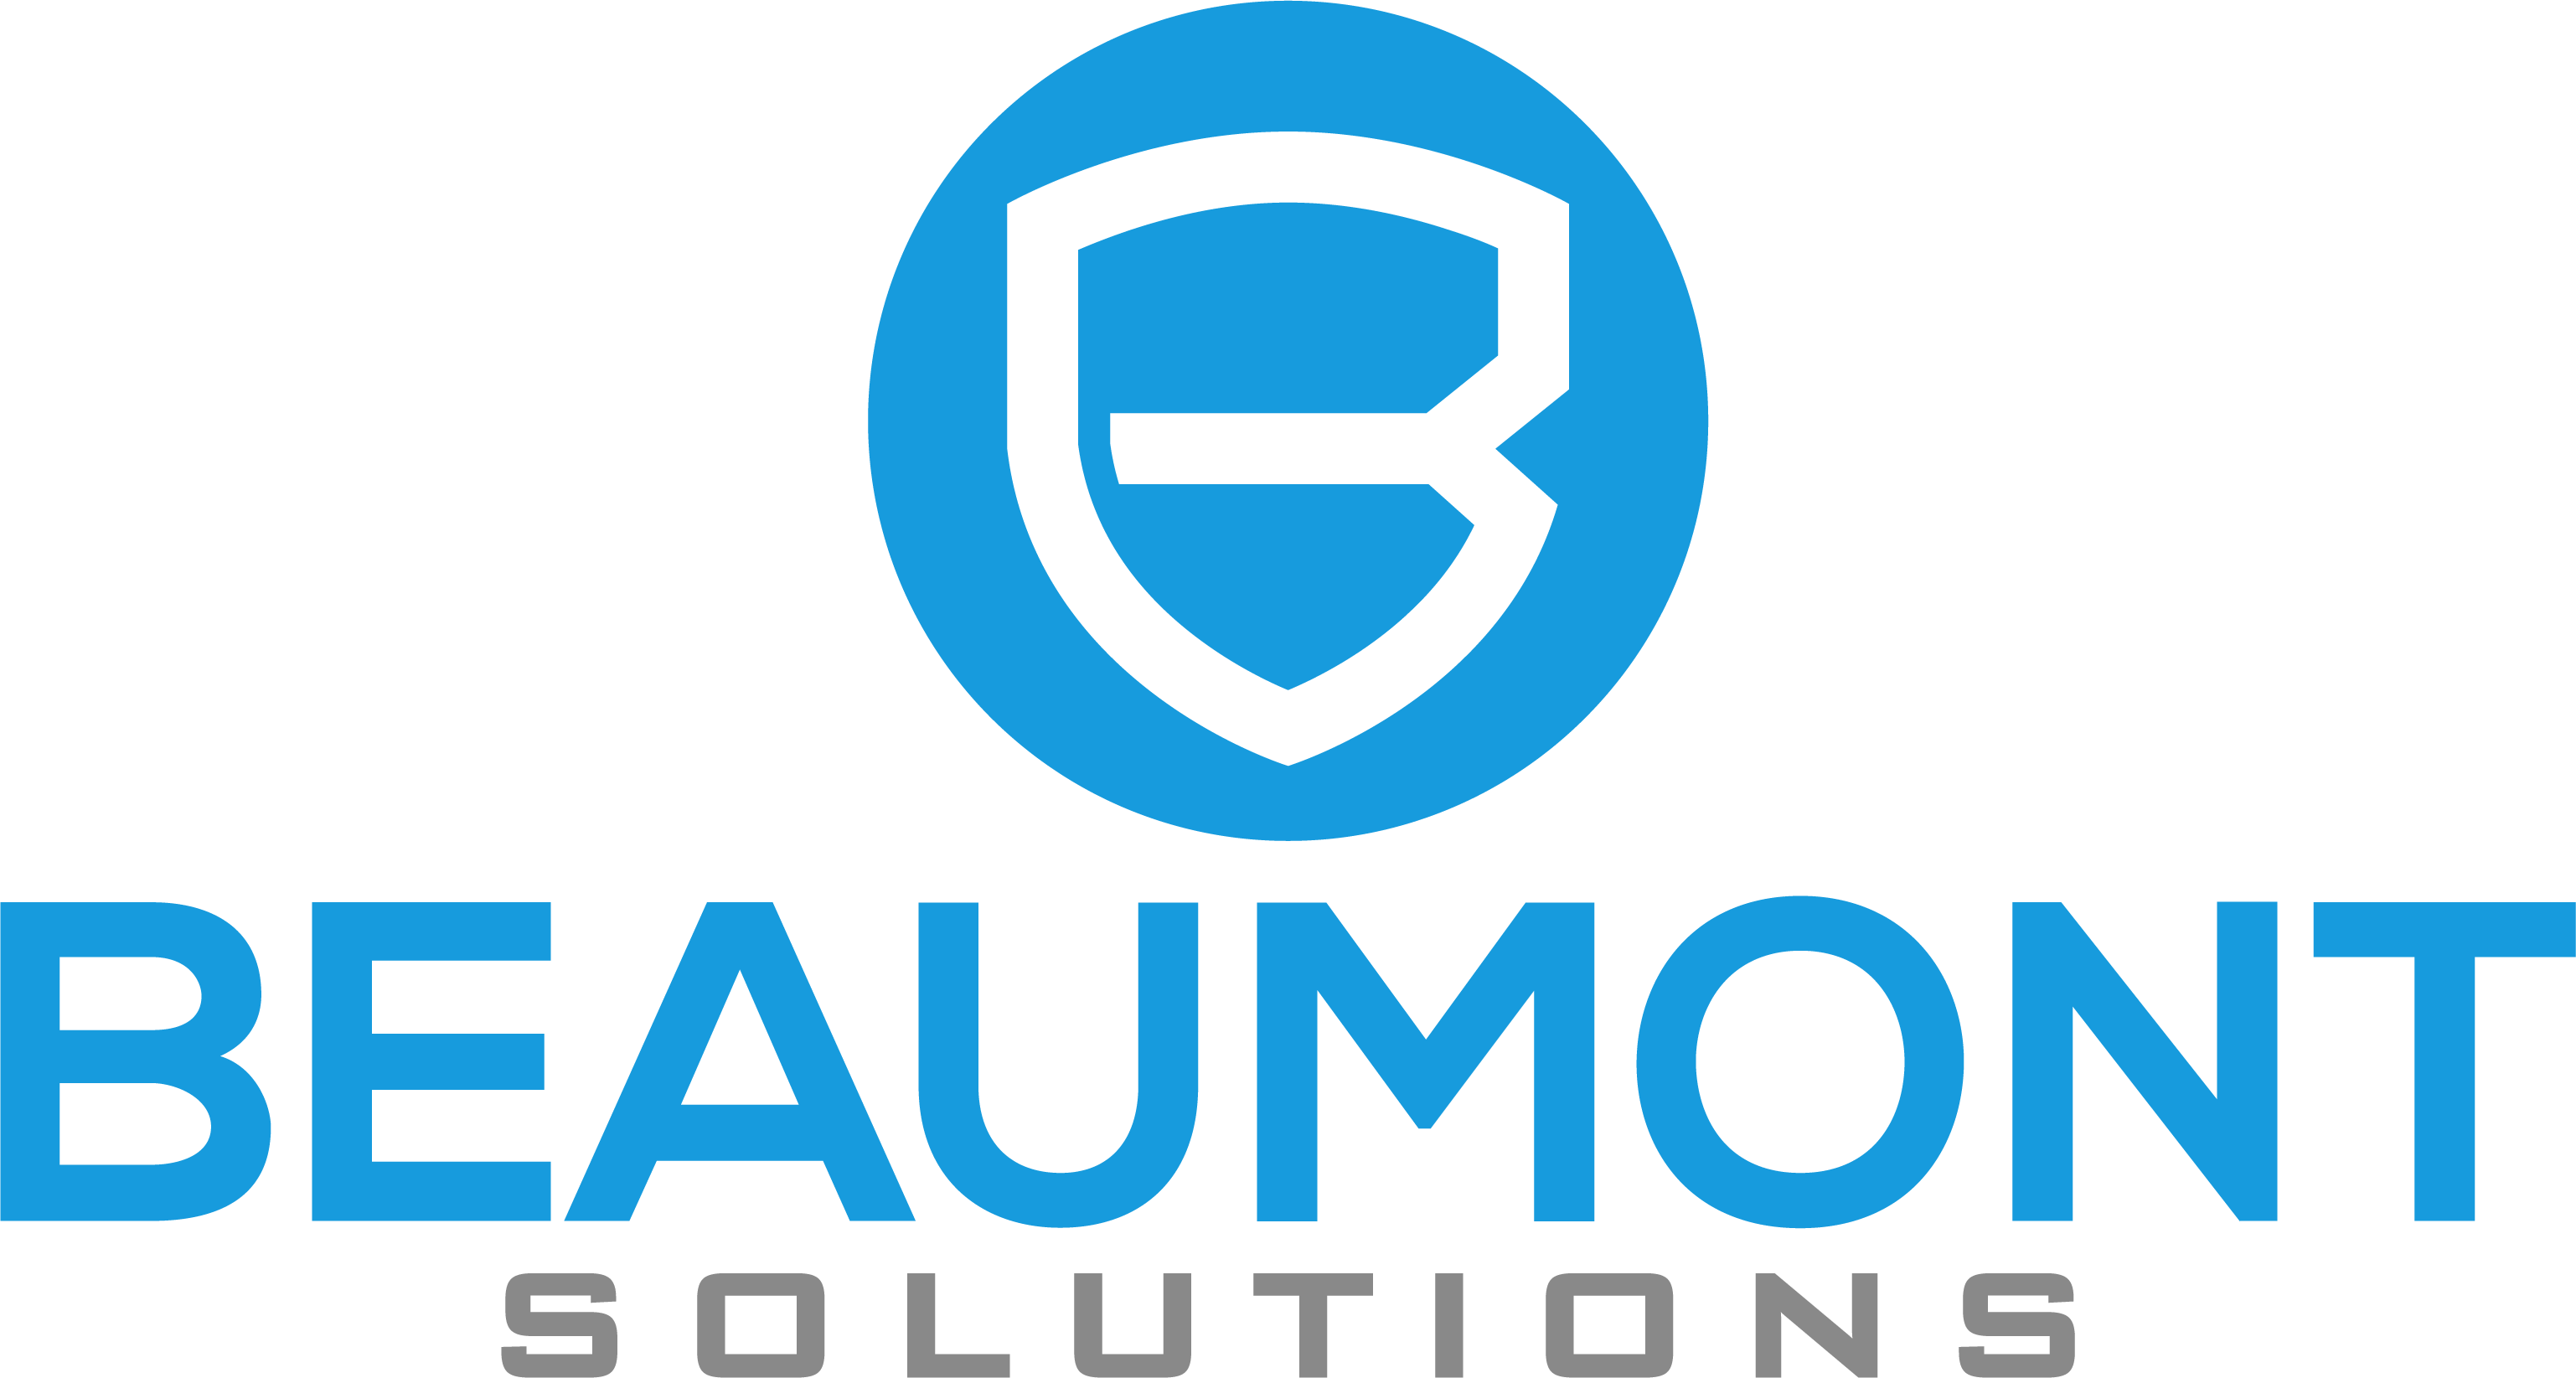 Beaumont Solutions logo